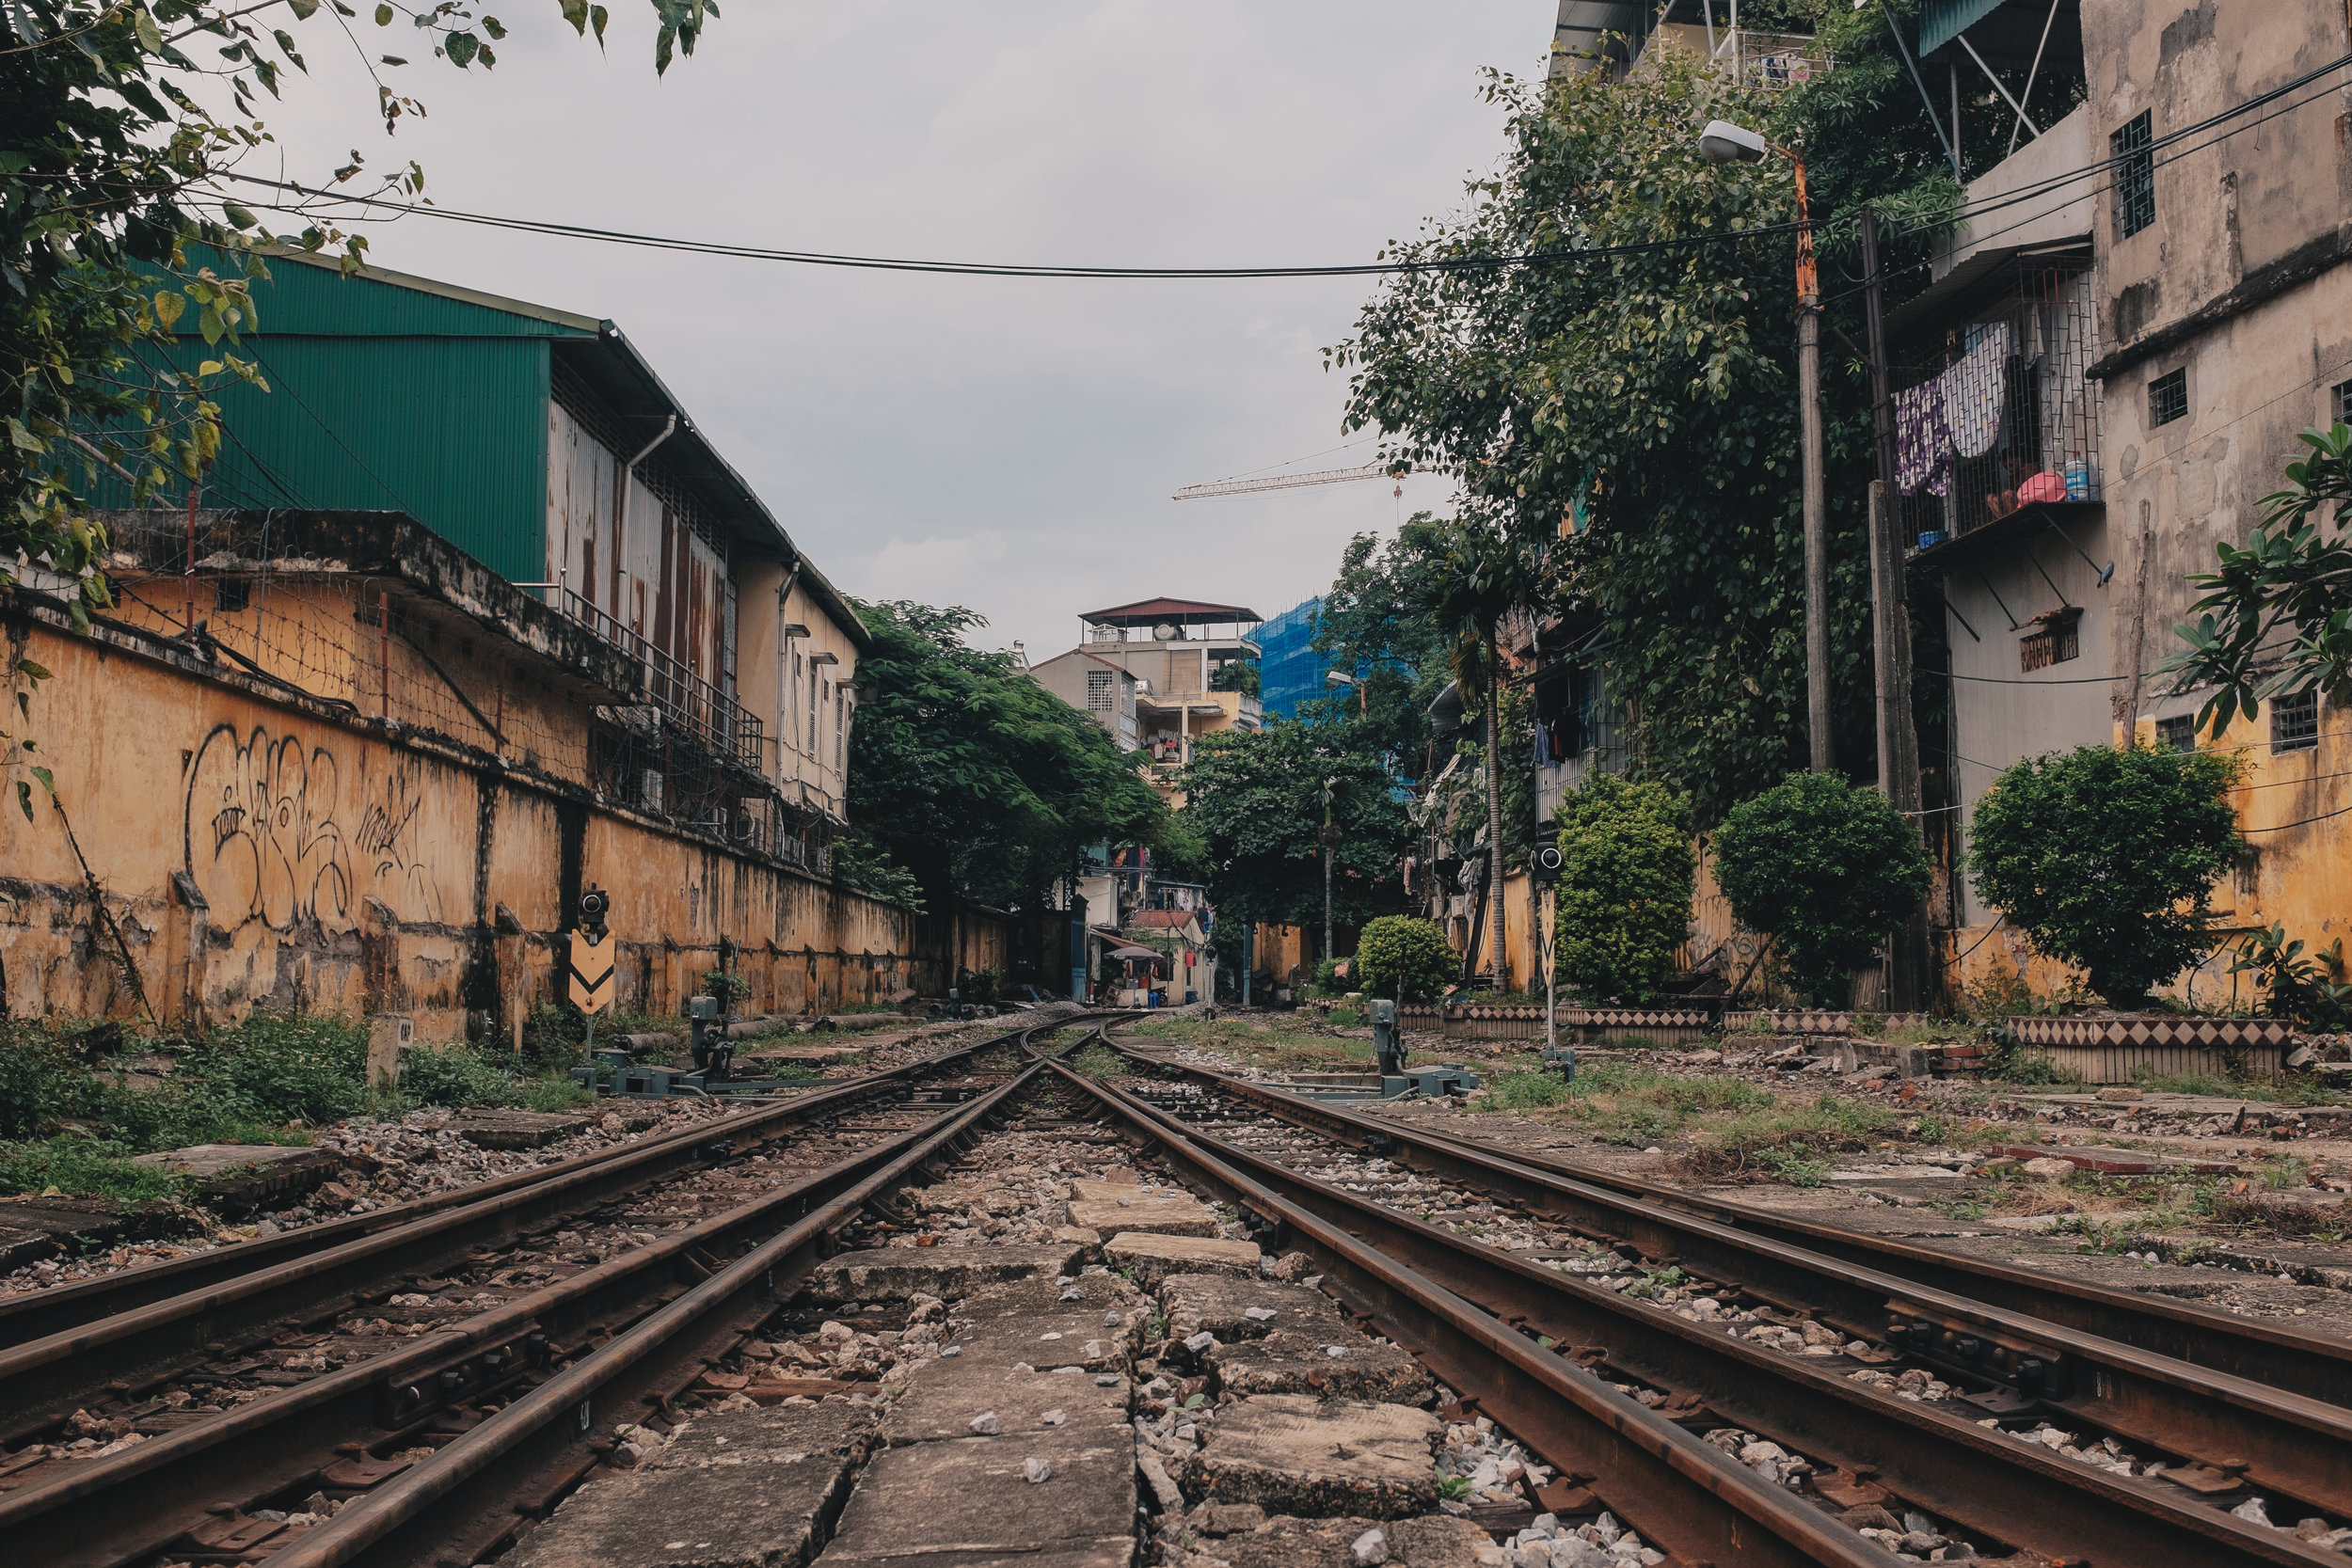 The look outwards from Ga Ha Noi - the Central Railway Station of Hanoi